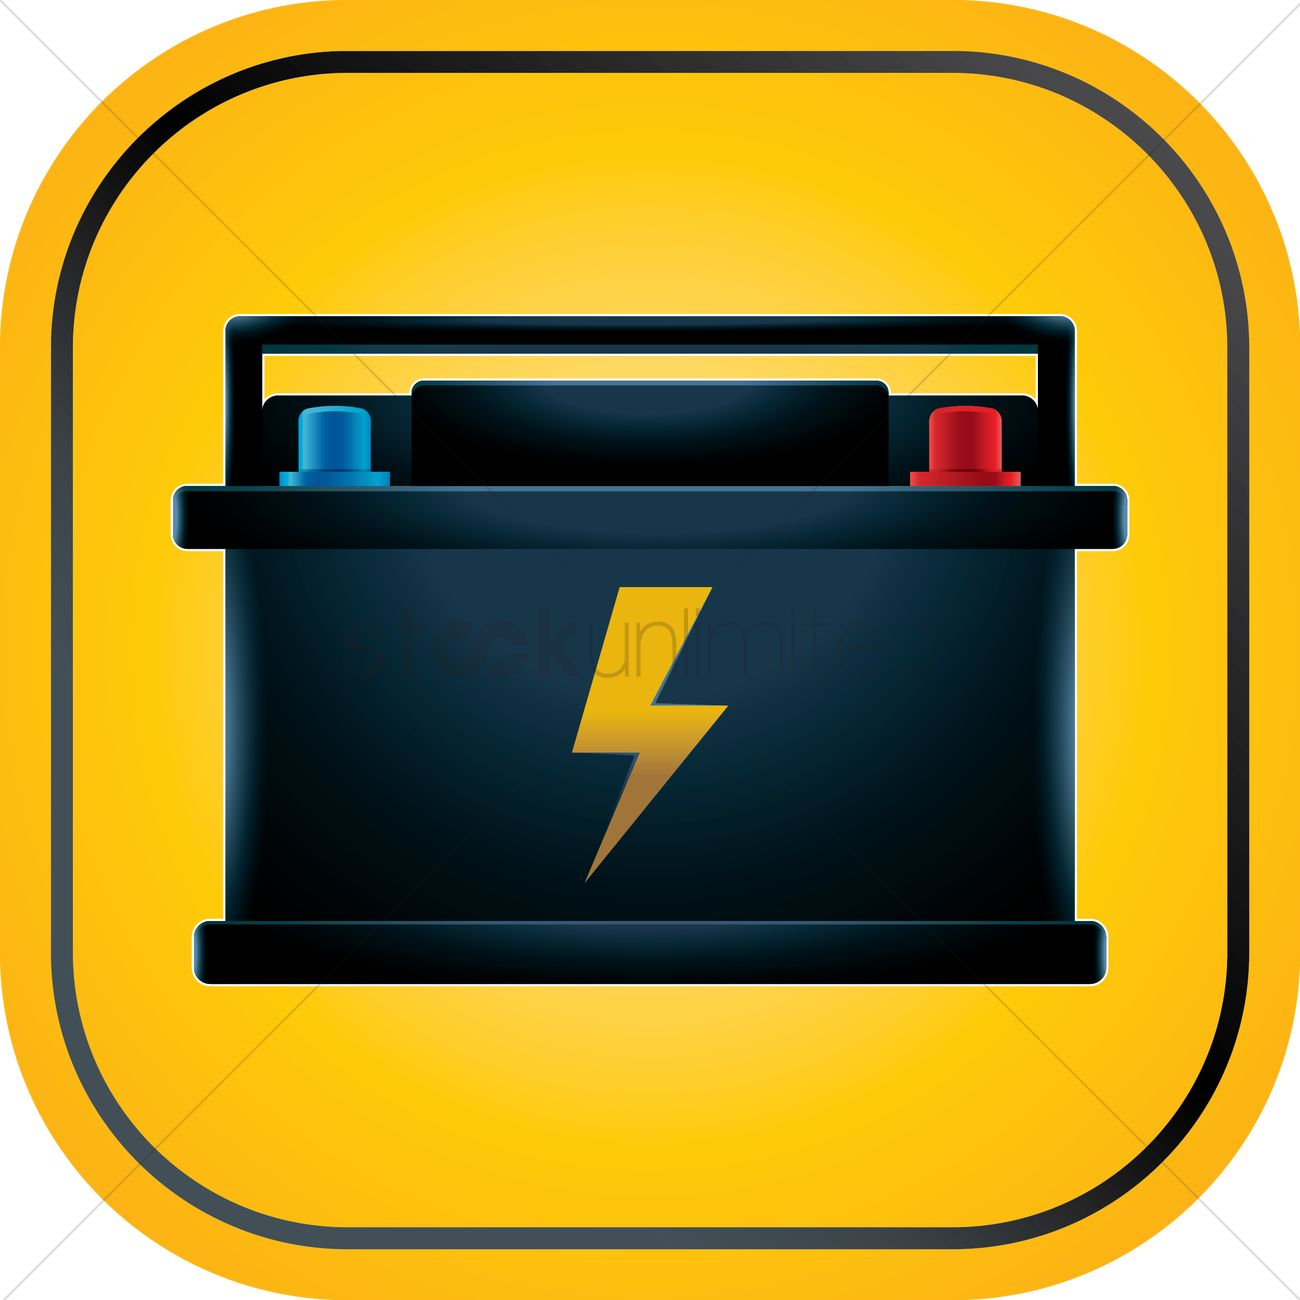 free car battery vector image 1322799 stockunlimited free car battery vector image 1322799